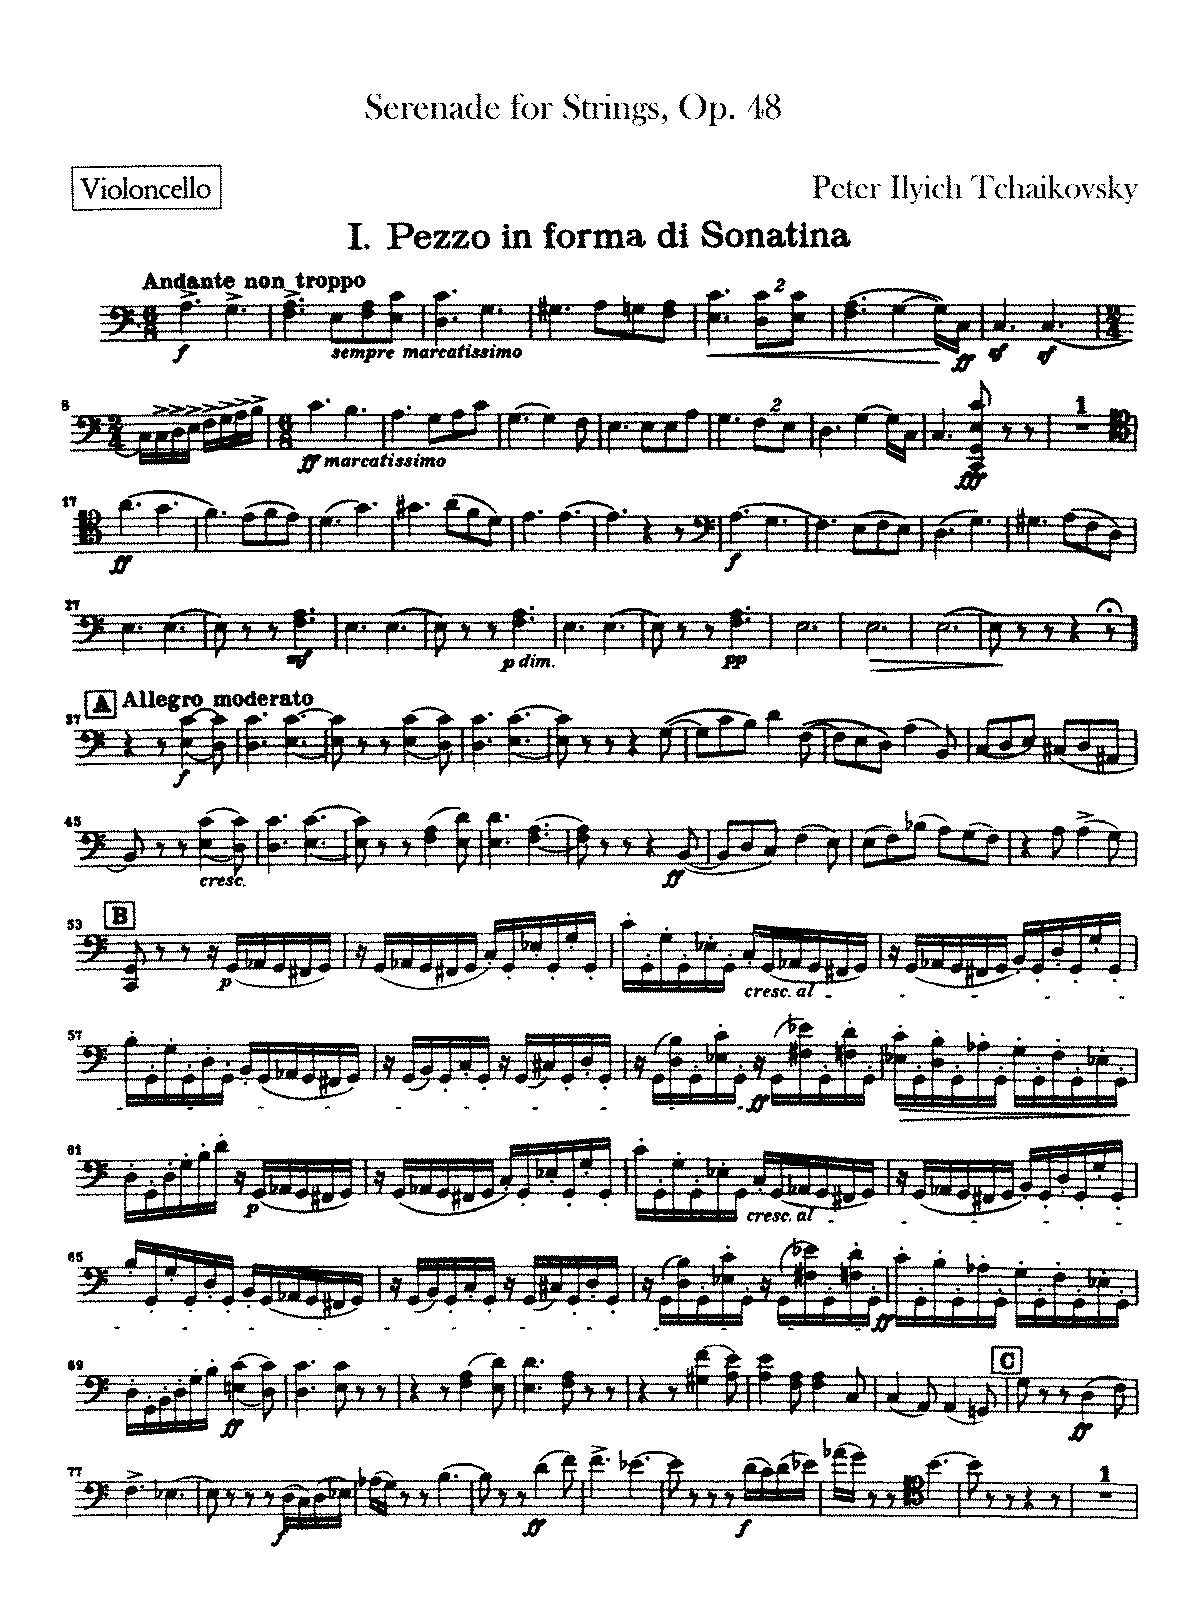 PMLP04623-Tchaikovsky - Serenade for Strings Op48 (cello-part)a.pdf